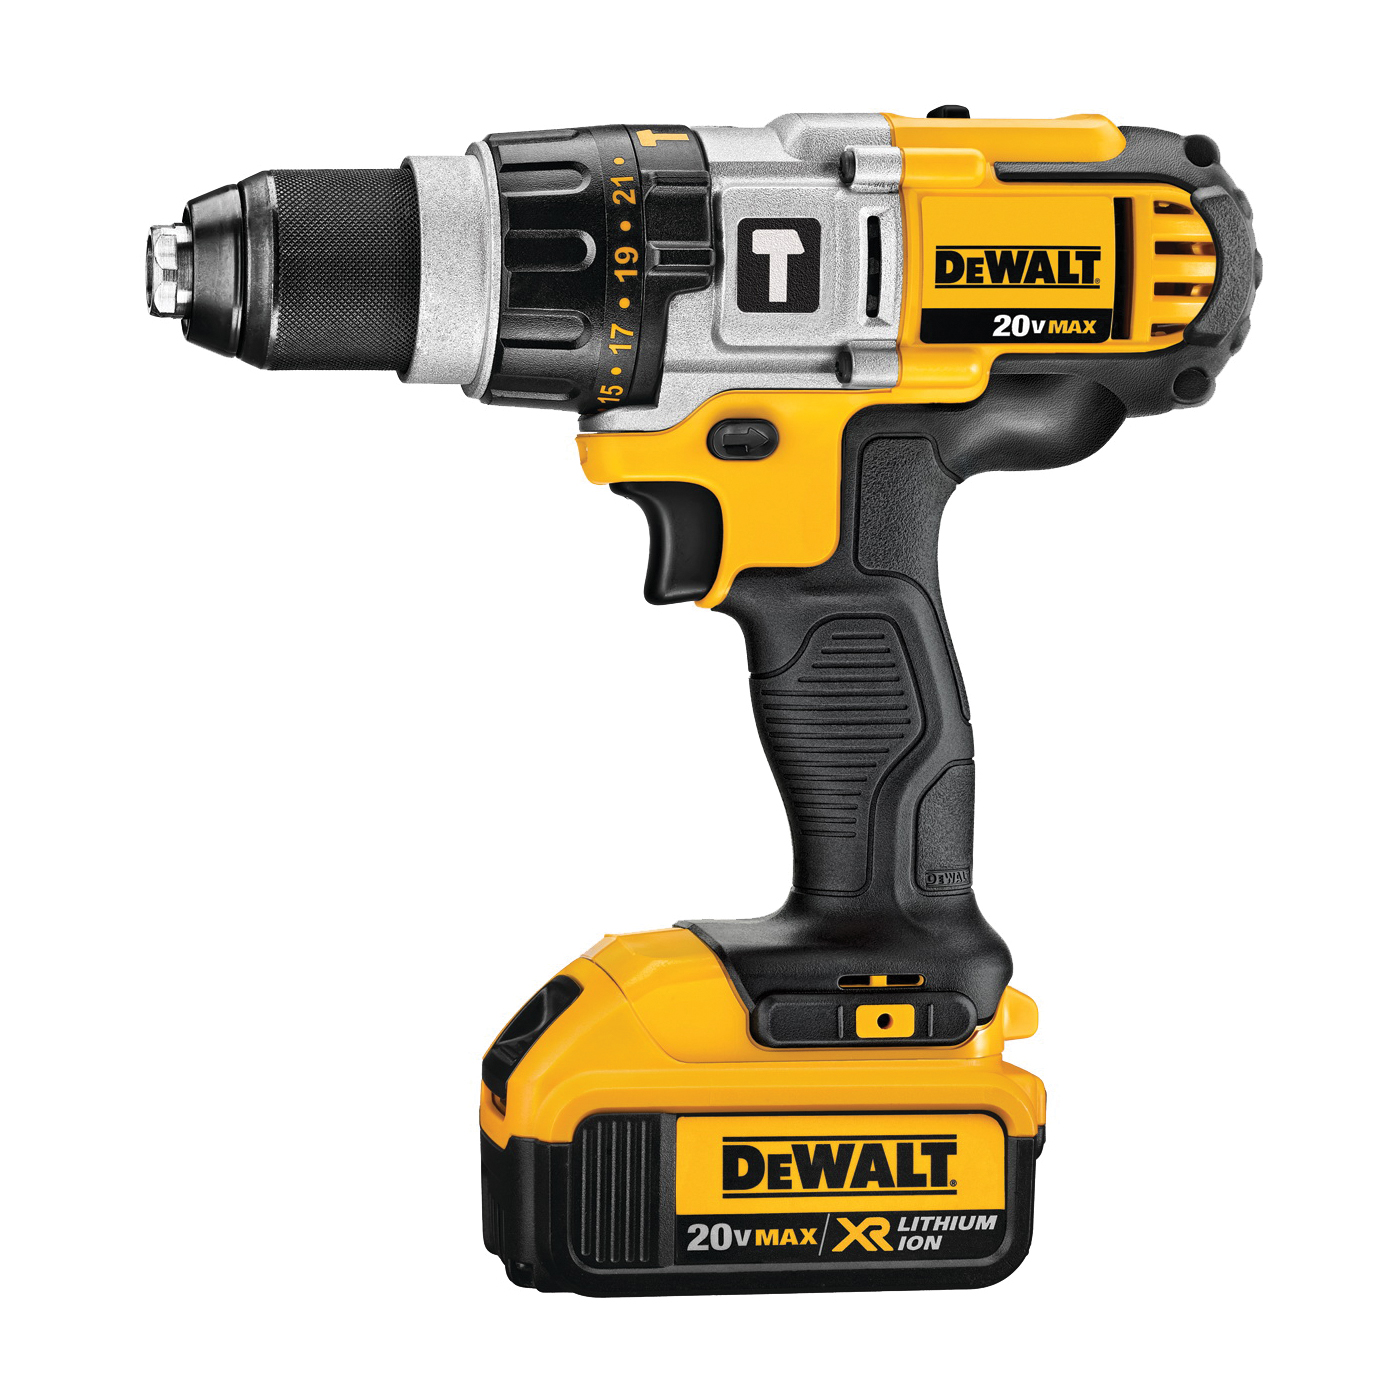 Picture of DeWALT DCD985M2 Premium Hammer Drill Kit, Kit, 20 V Battery, 4 Ah, 1/2 in Chuck, Ratcheting Chuck